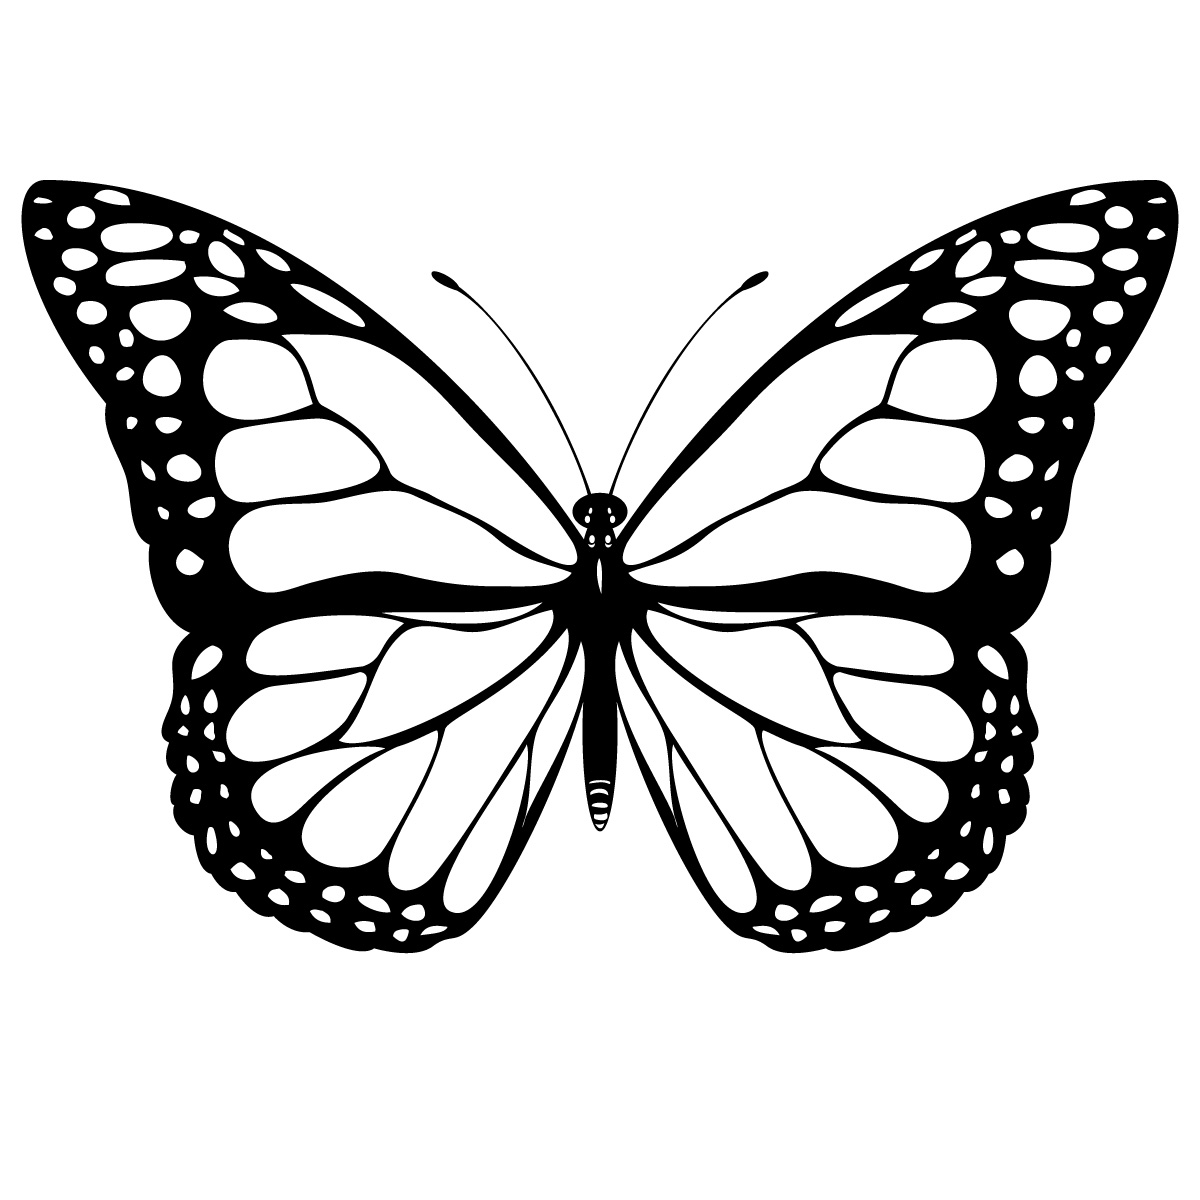 This Drawing Of A Butterfly Is Also An Icon As It Physically Resembles